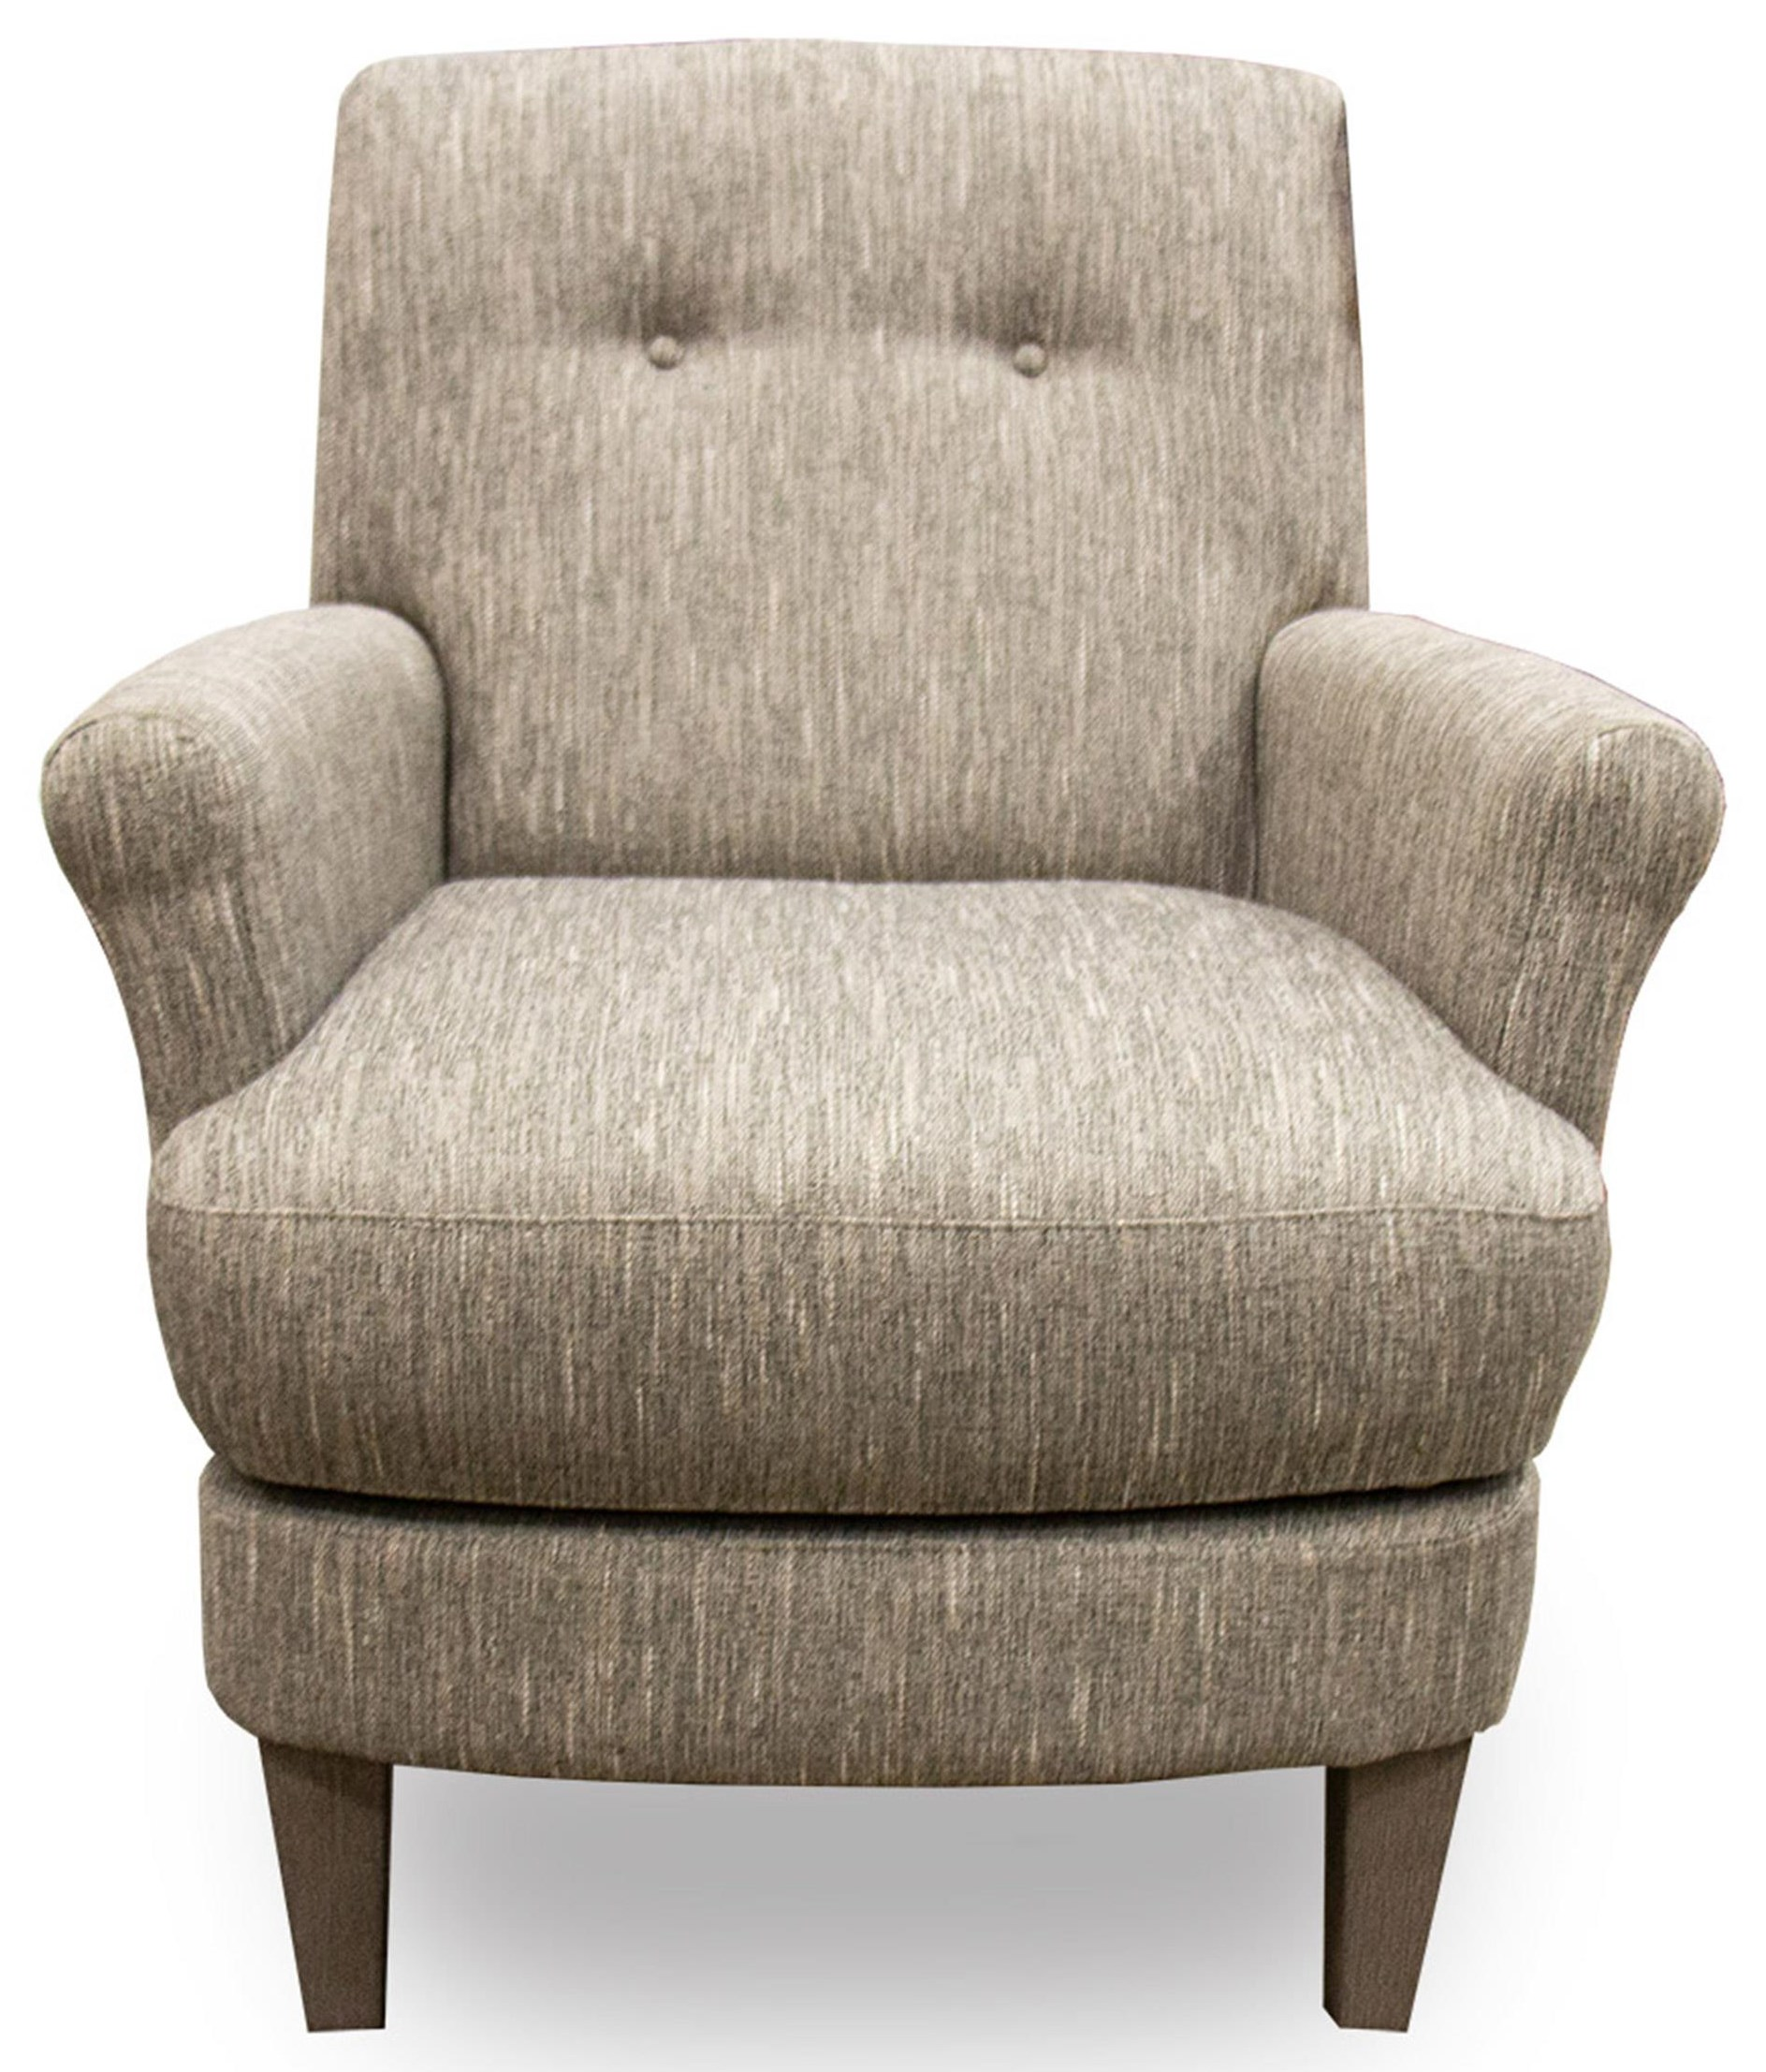 Linen Swivel Barrel Chair with Wood Legs